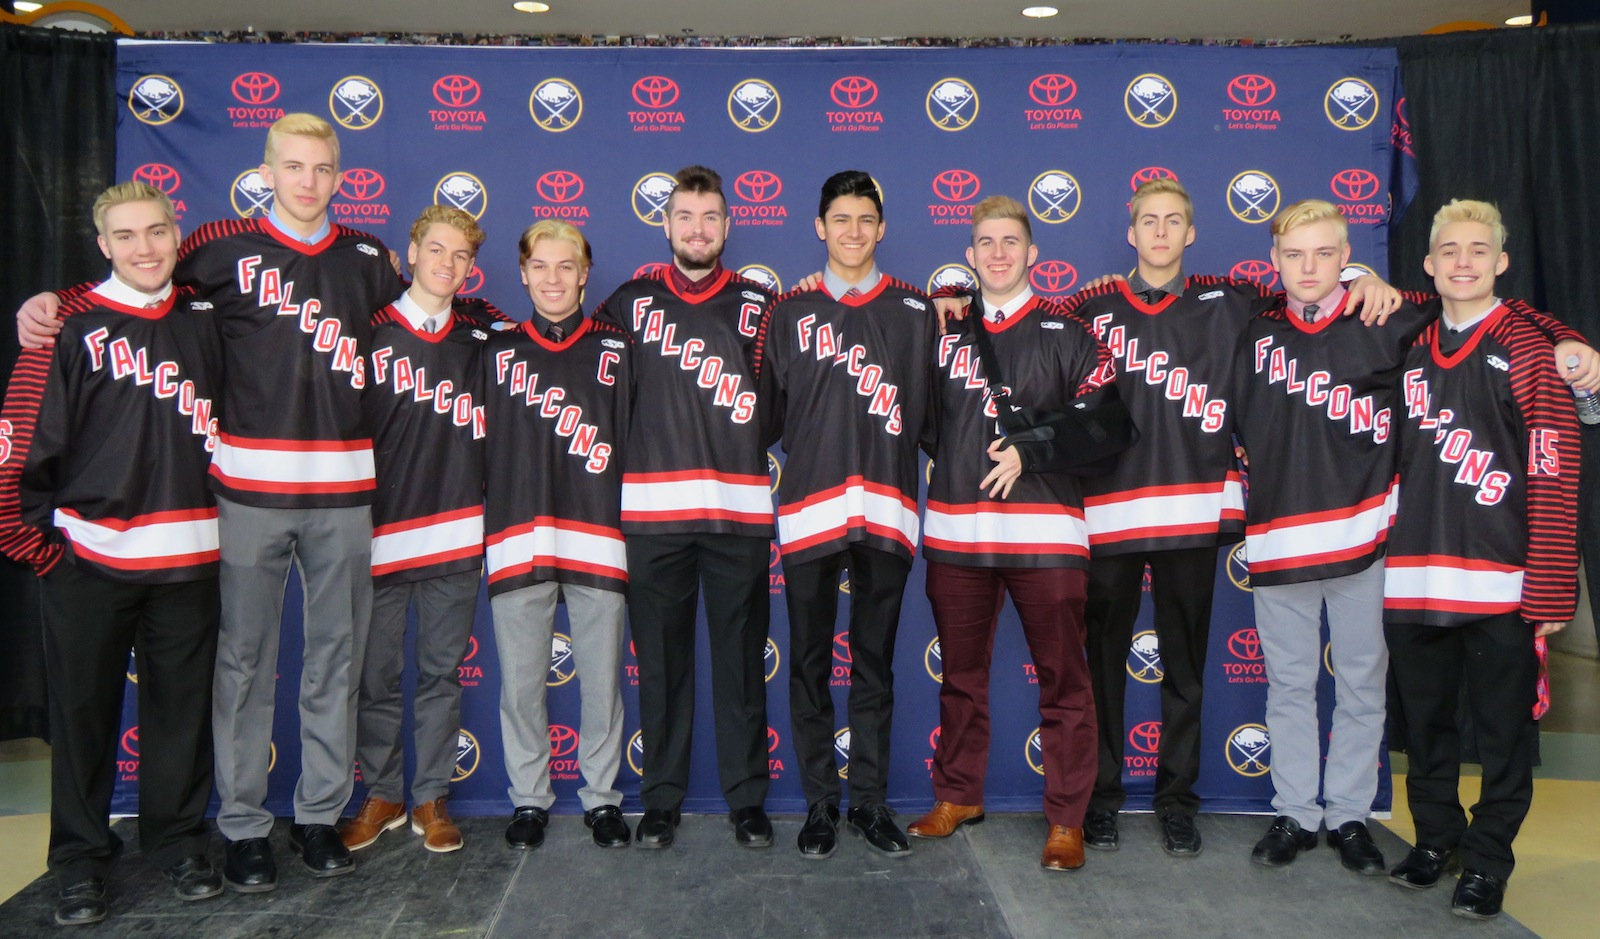 Teammates from the Niagara-Wheatfield Falcons hockey team pose for a picture Friday morning at the KeyBank Center. From left to right, Peter Buffone, Zack Belter, Michael Lotempio, Nick Peters, Christopher Tobey, Chace Woods, Sam Messana, Peyton Siegmann, Nick Breier and Dom Pulli. (Photo by David Yarger)